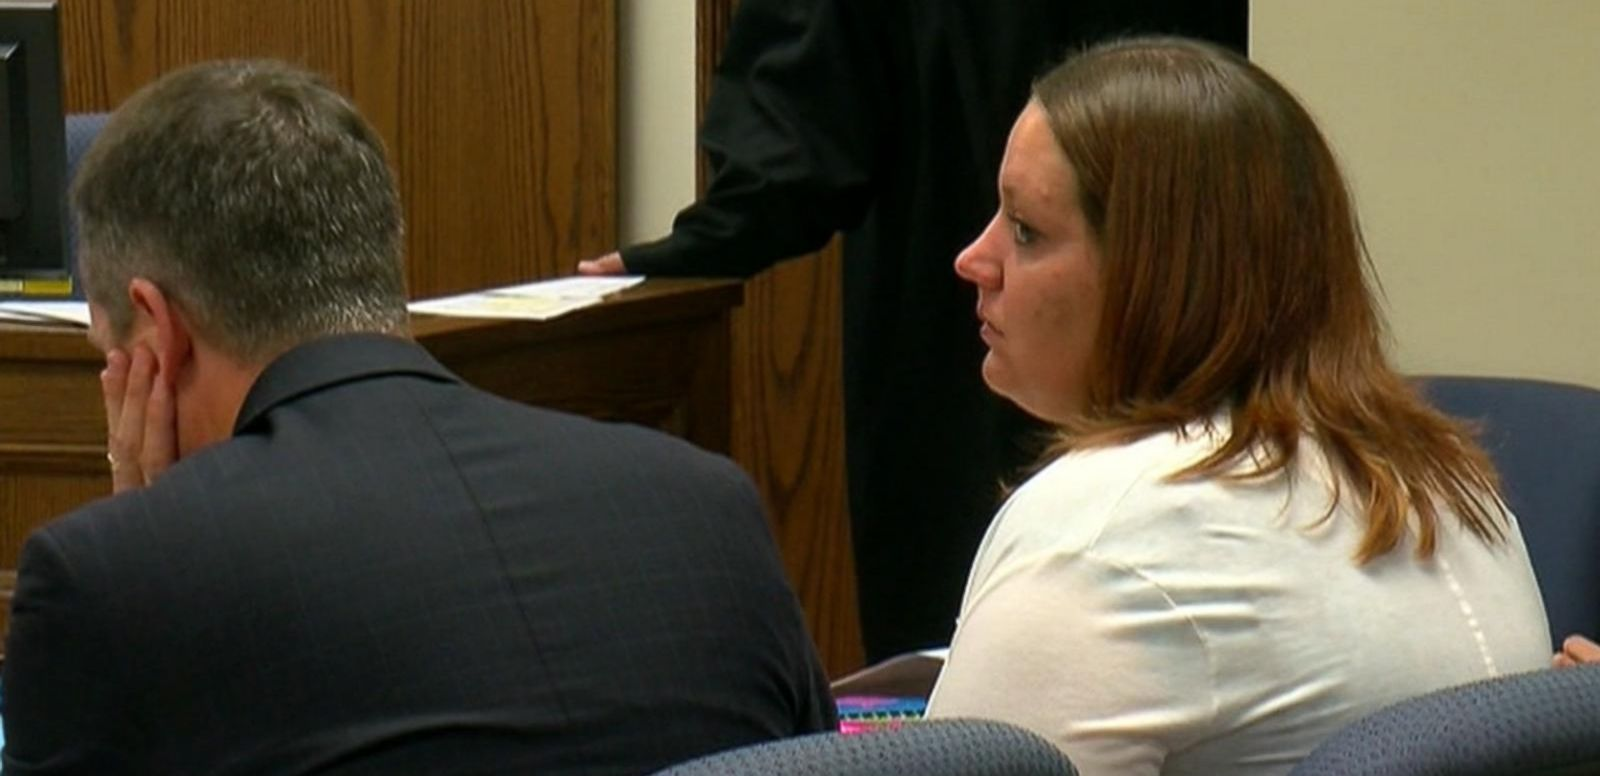 VIDEO: Mother Acquitted in Distracted Driving Case that Resulted in Fatal Crash